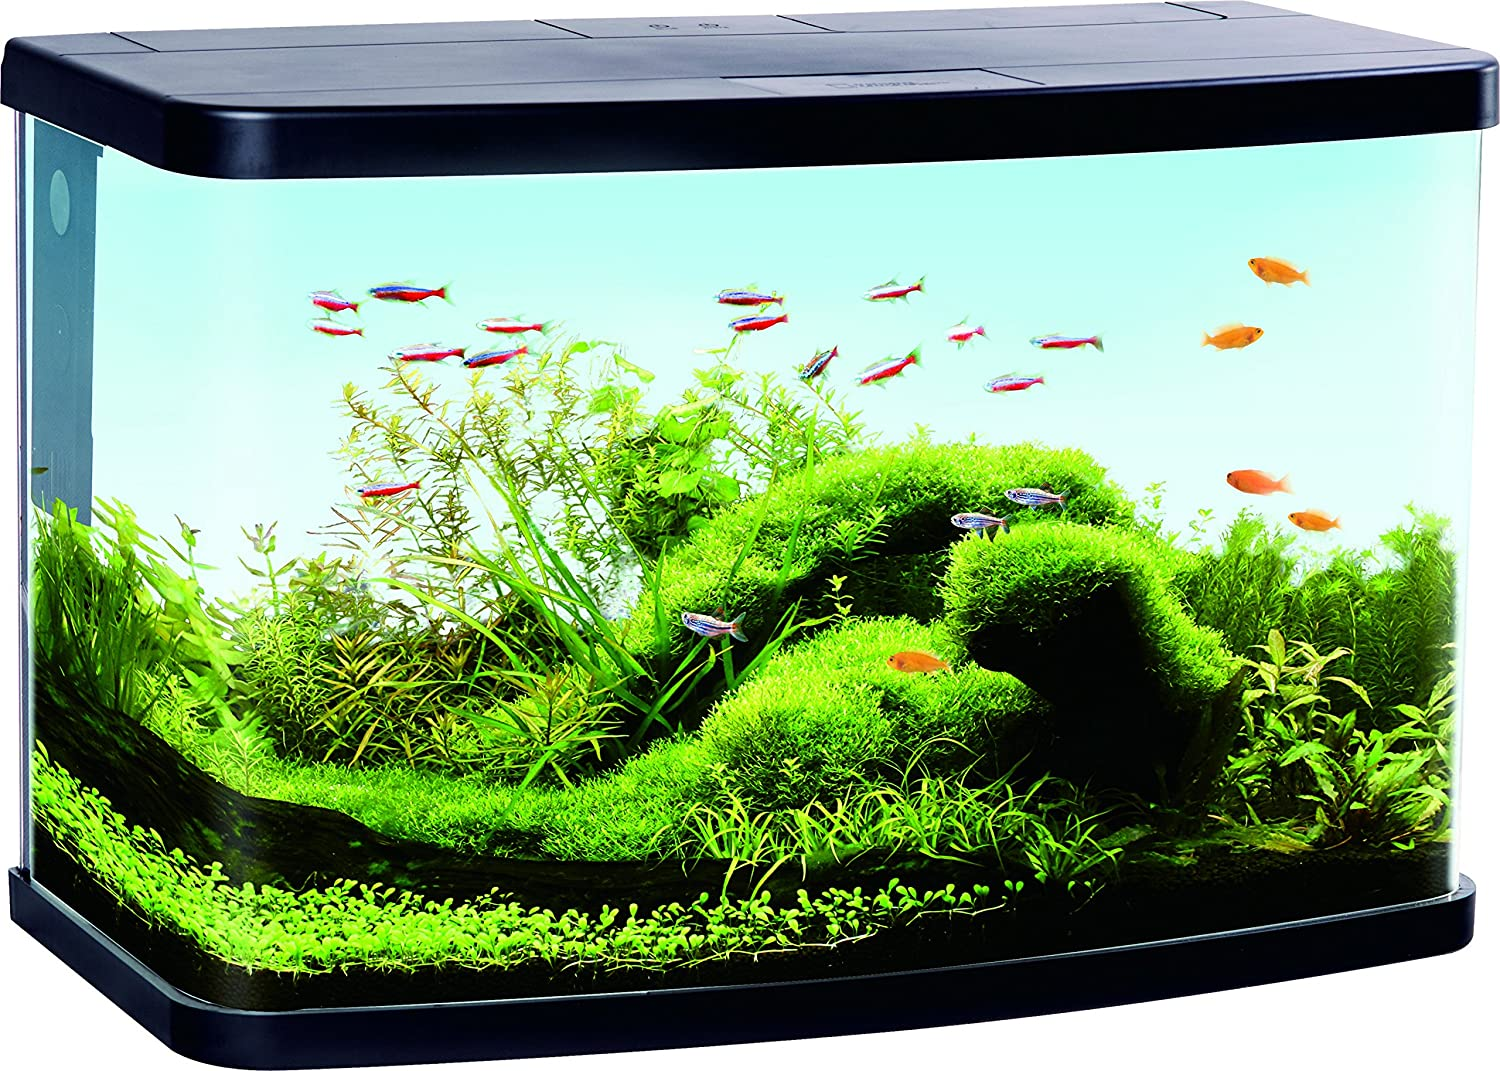 Duvo + Aquarium Panorama VS60 Filter für Aquaristik schwarz 61 x 30,6 x 39,8 cm